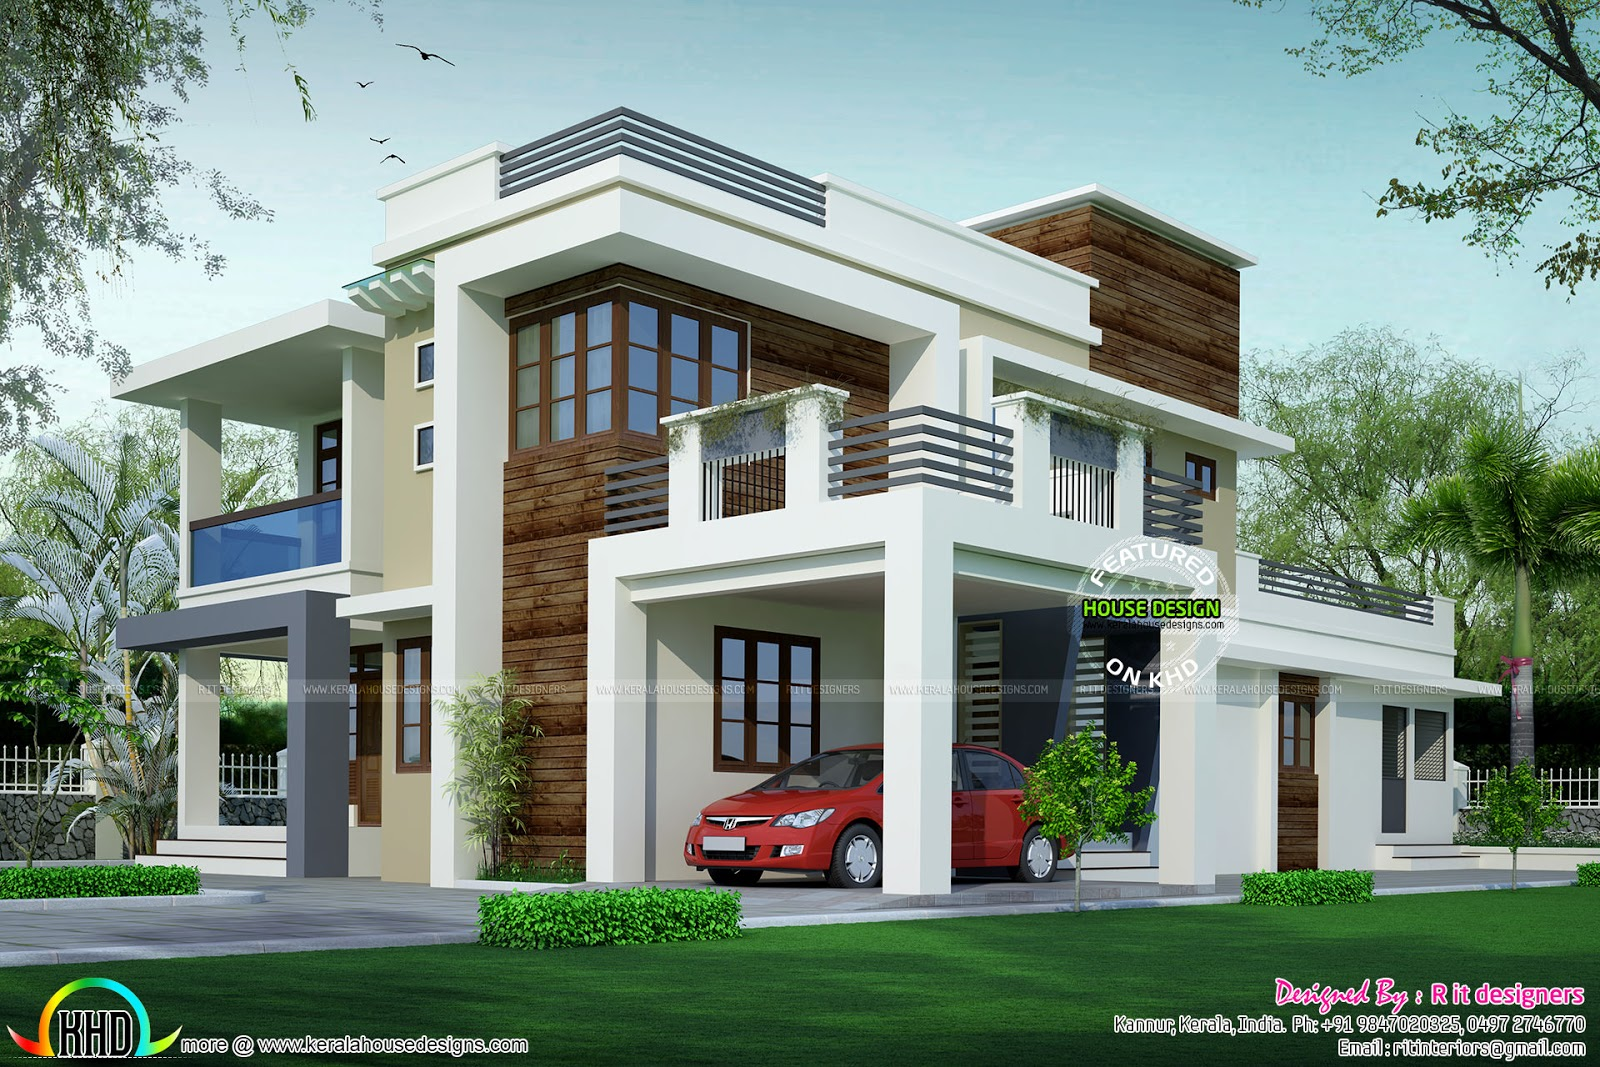 House design contemporary model kerala home design and for Indian house portico models